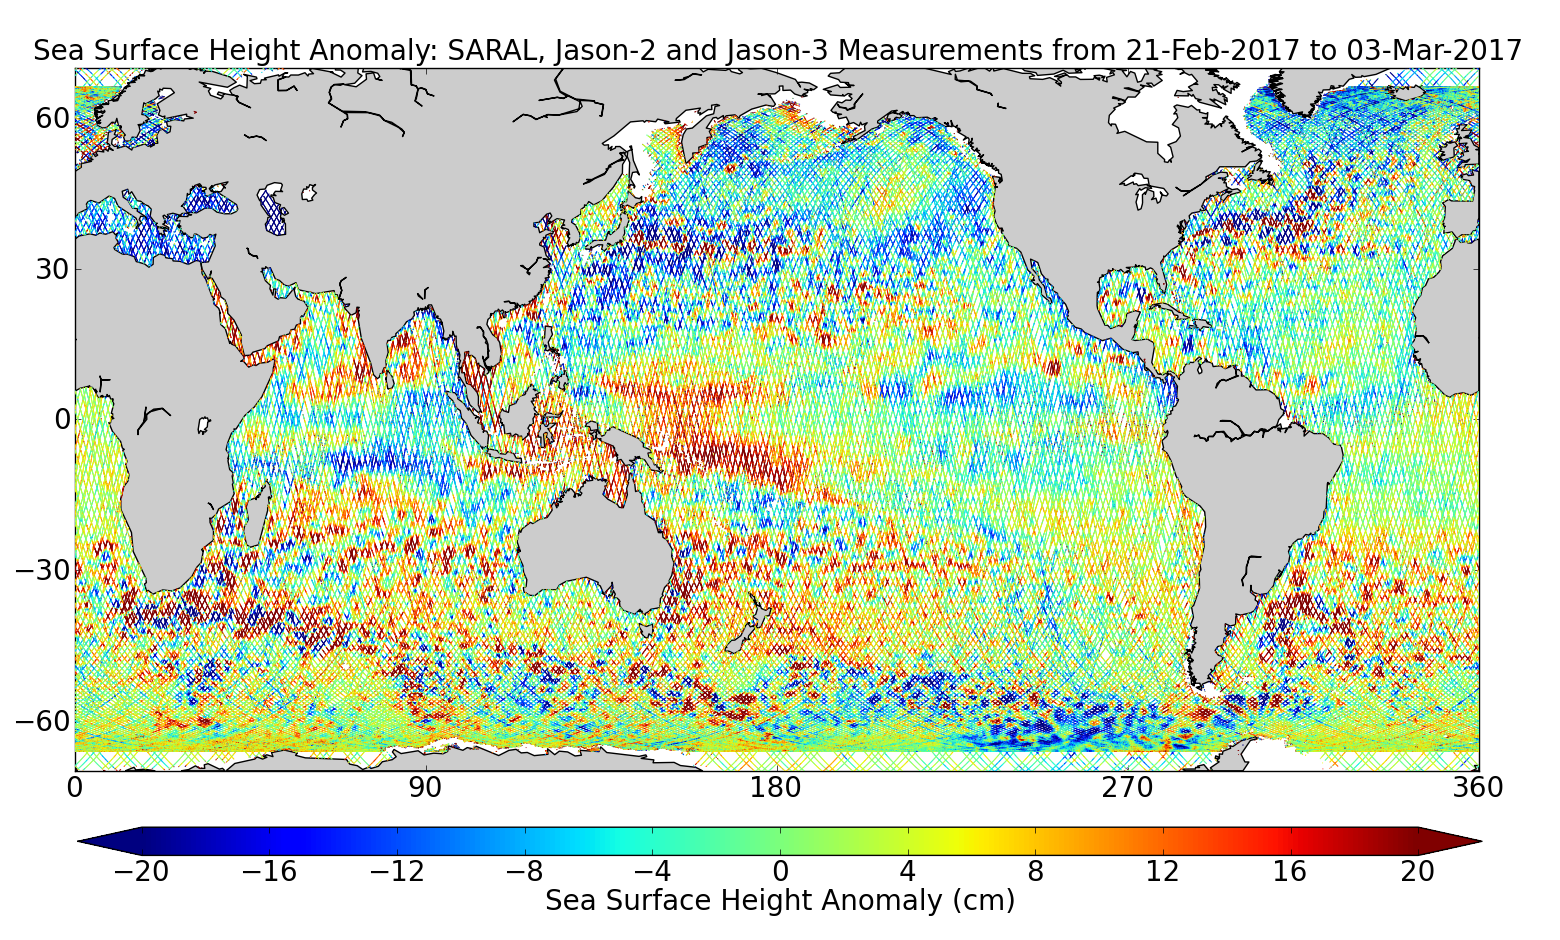 Sea Surface Height Anomaly: SARAL, Jason-2 and Jason-3 Measurements from 21-Feb-2017 to 03-Mar-2017